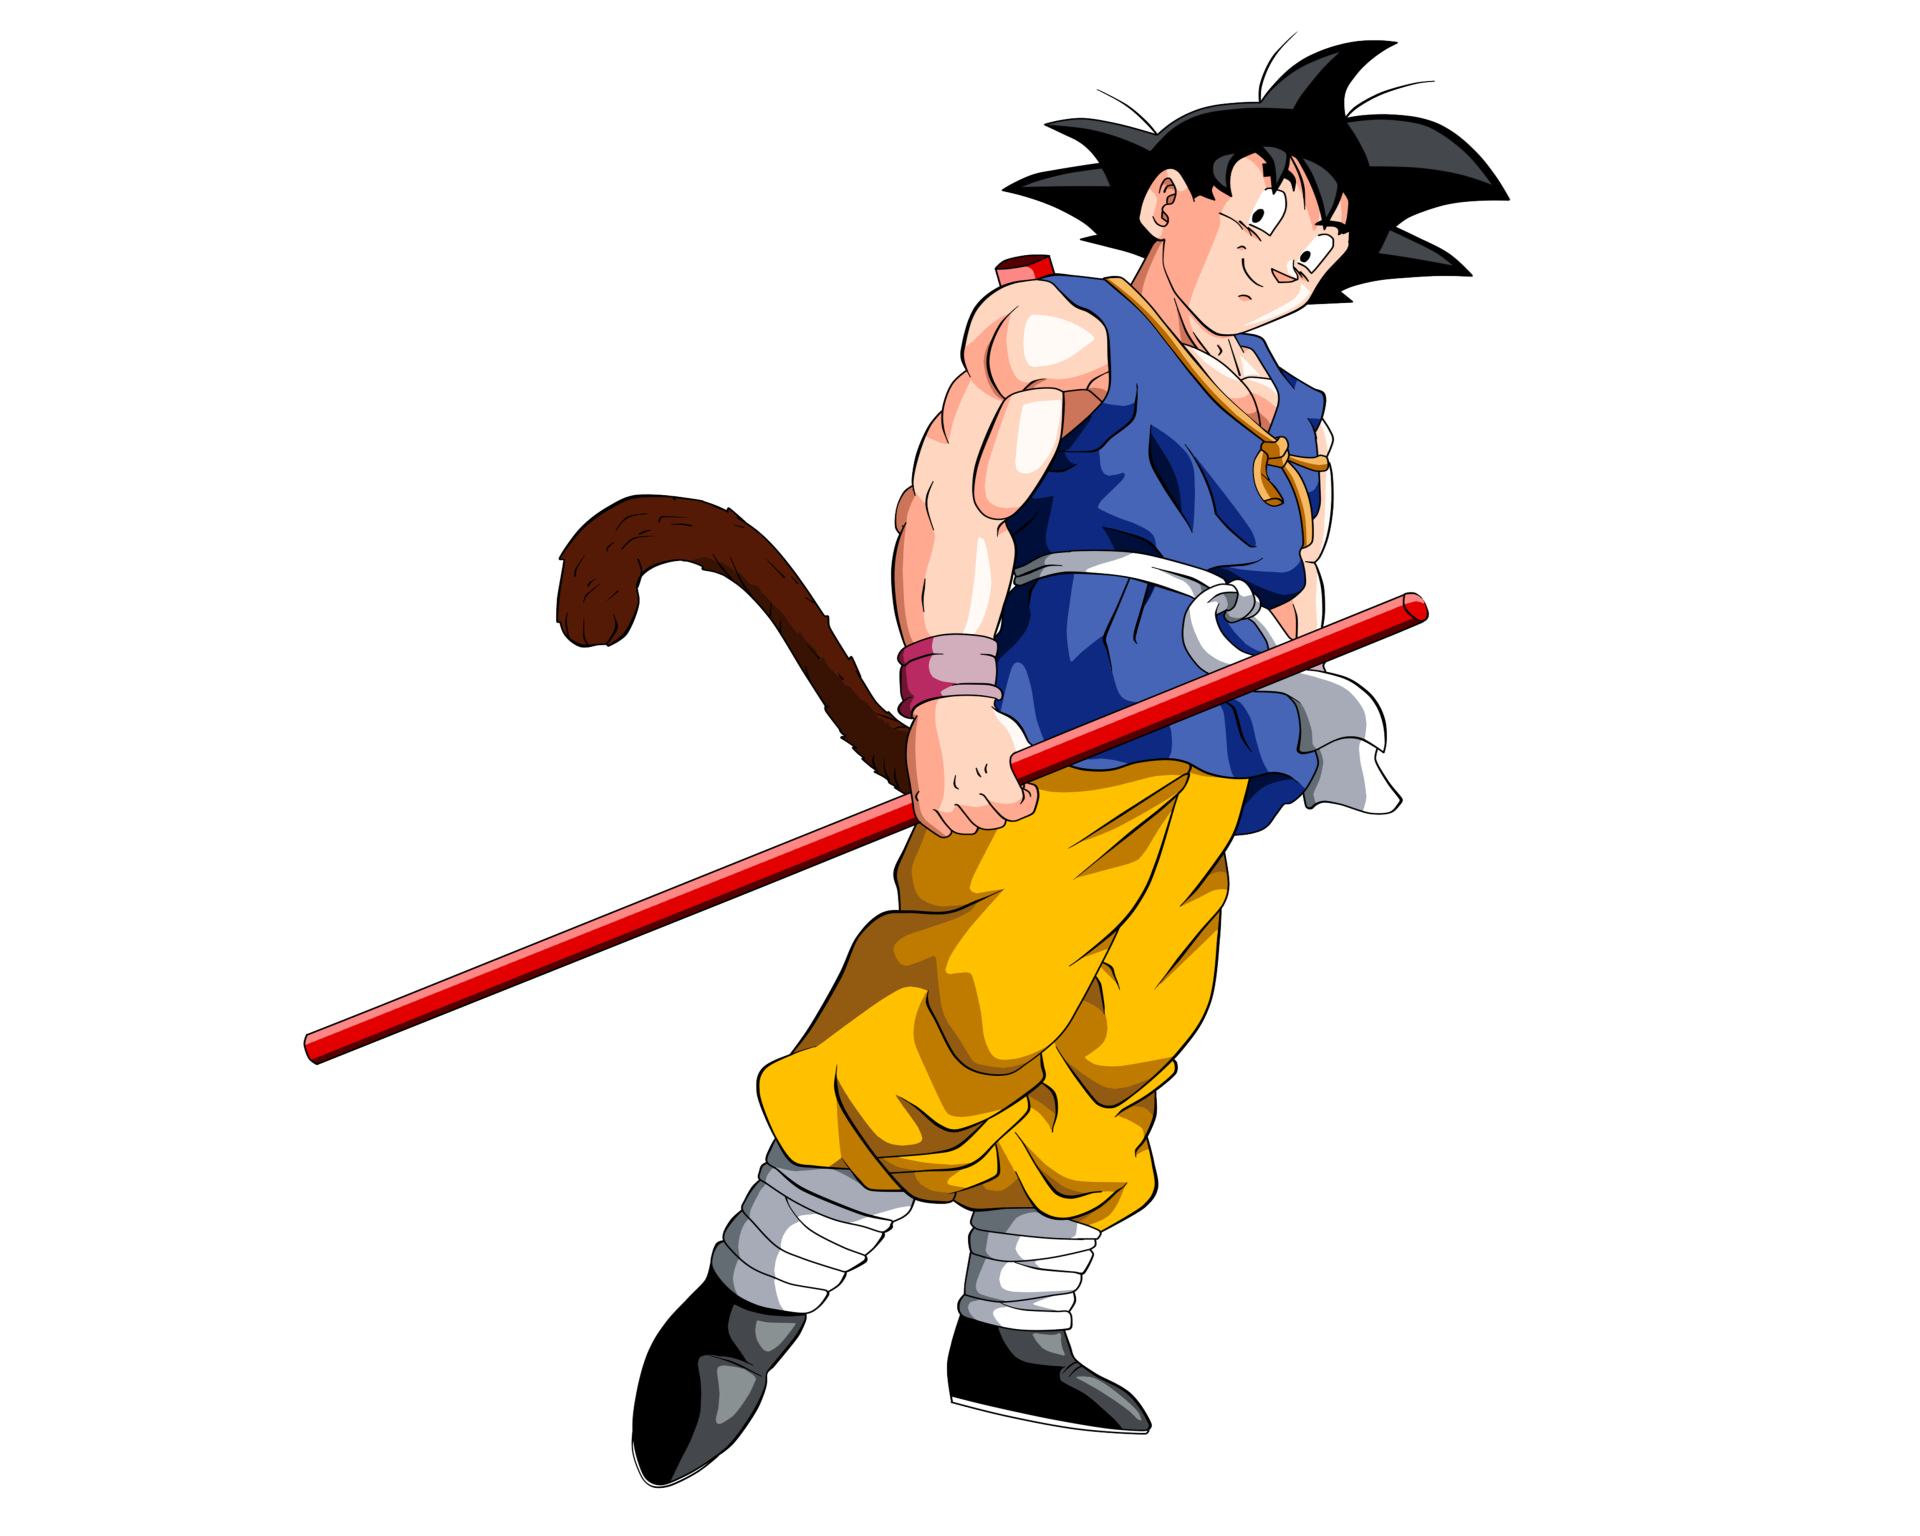 Goku 4k ultra hd wallpaper background image 5000x4000 - Dragon ball gt goku wallpaper ...